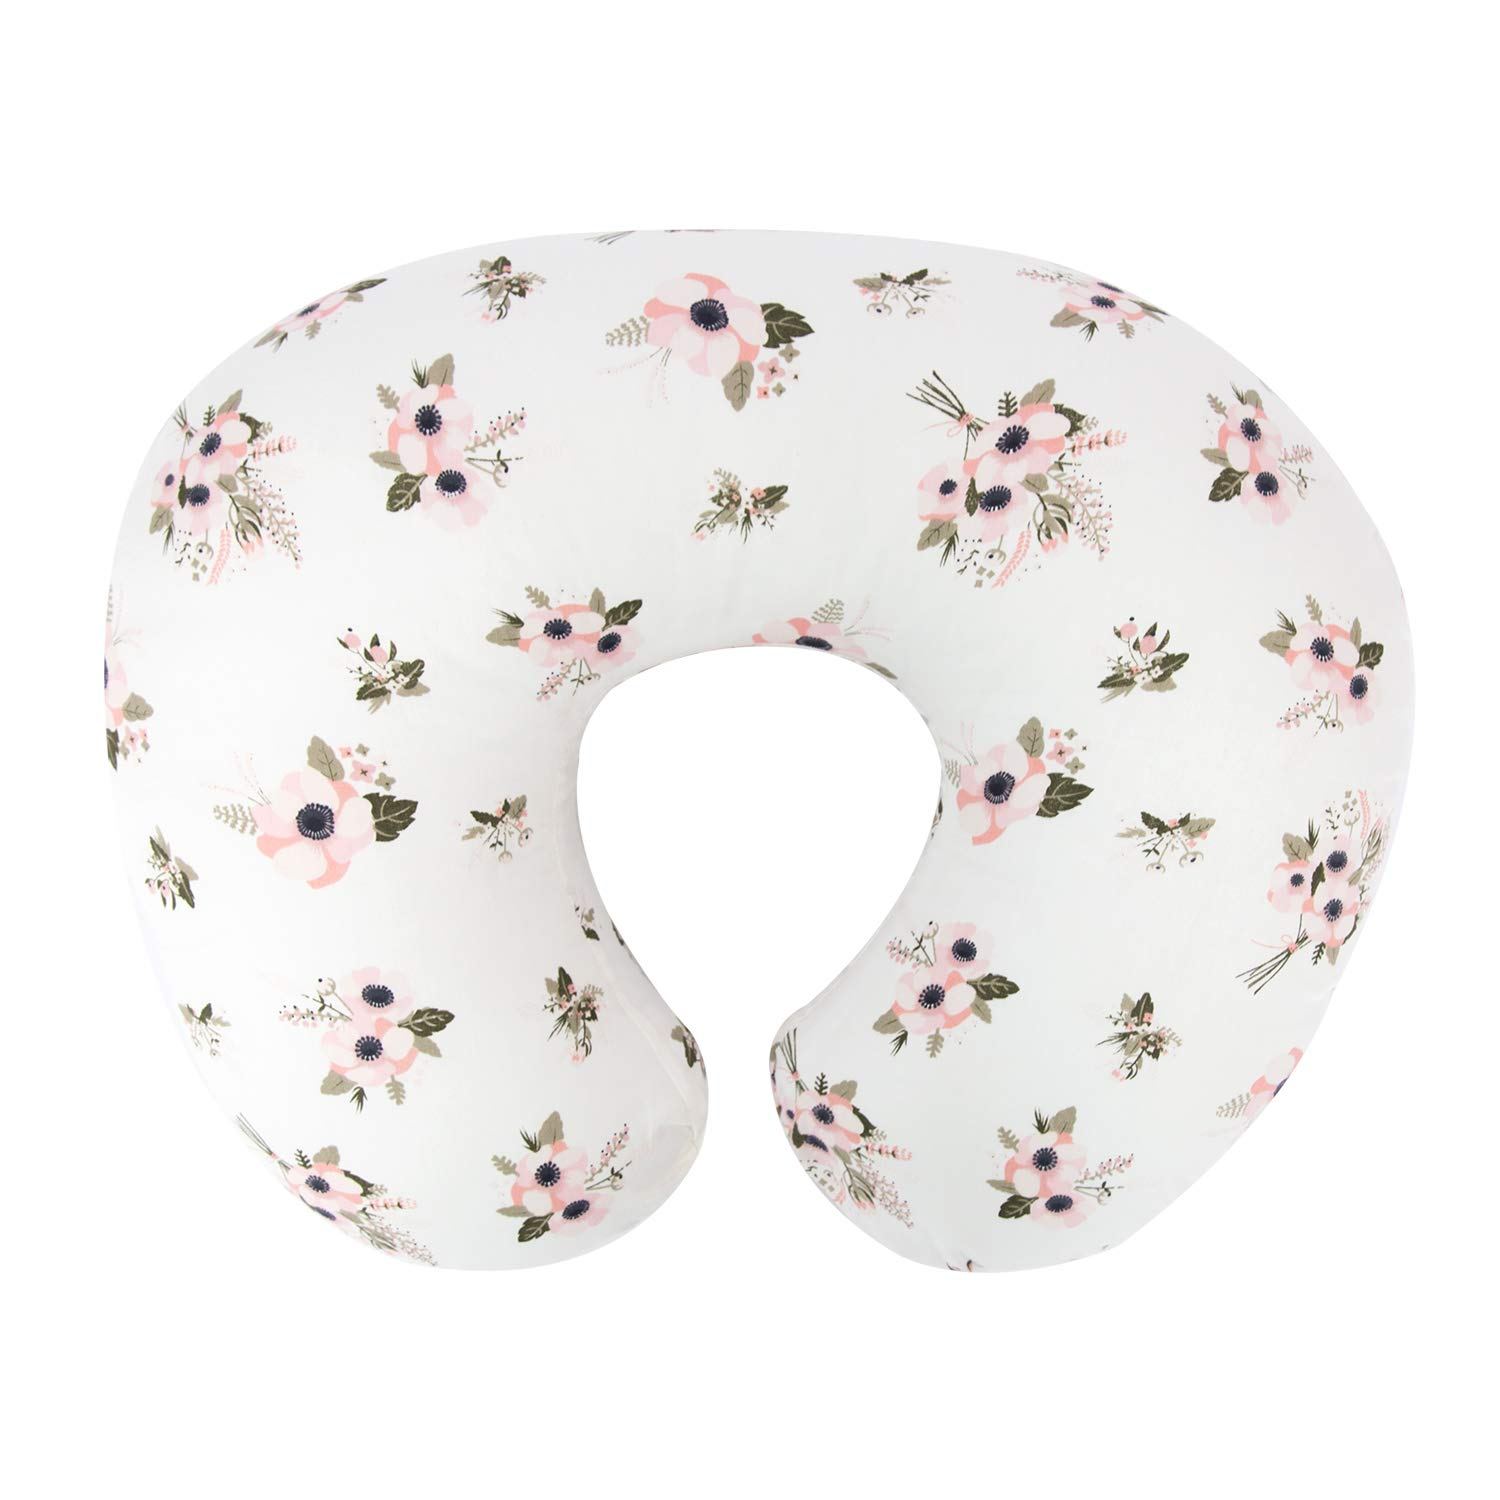 TILLYOU Large Zipper Personalized Nursing Pillow Cover, 100% Cotton Hypoallergenic Pillow Slipcovers, Safely Fits On Standard Infant Nursing Pillows, Floral